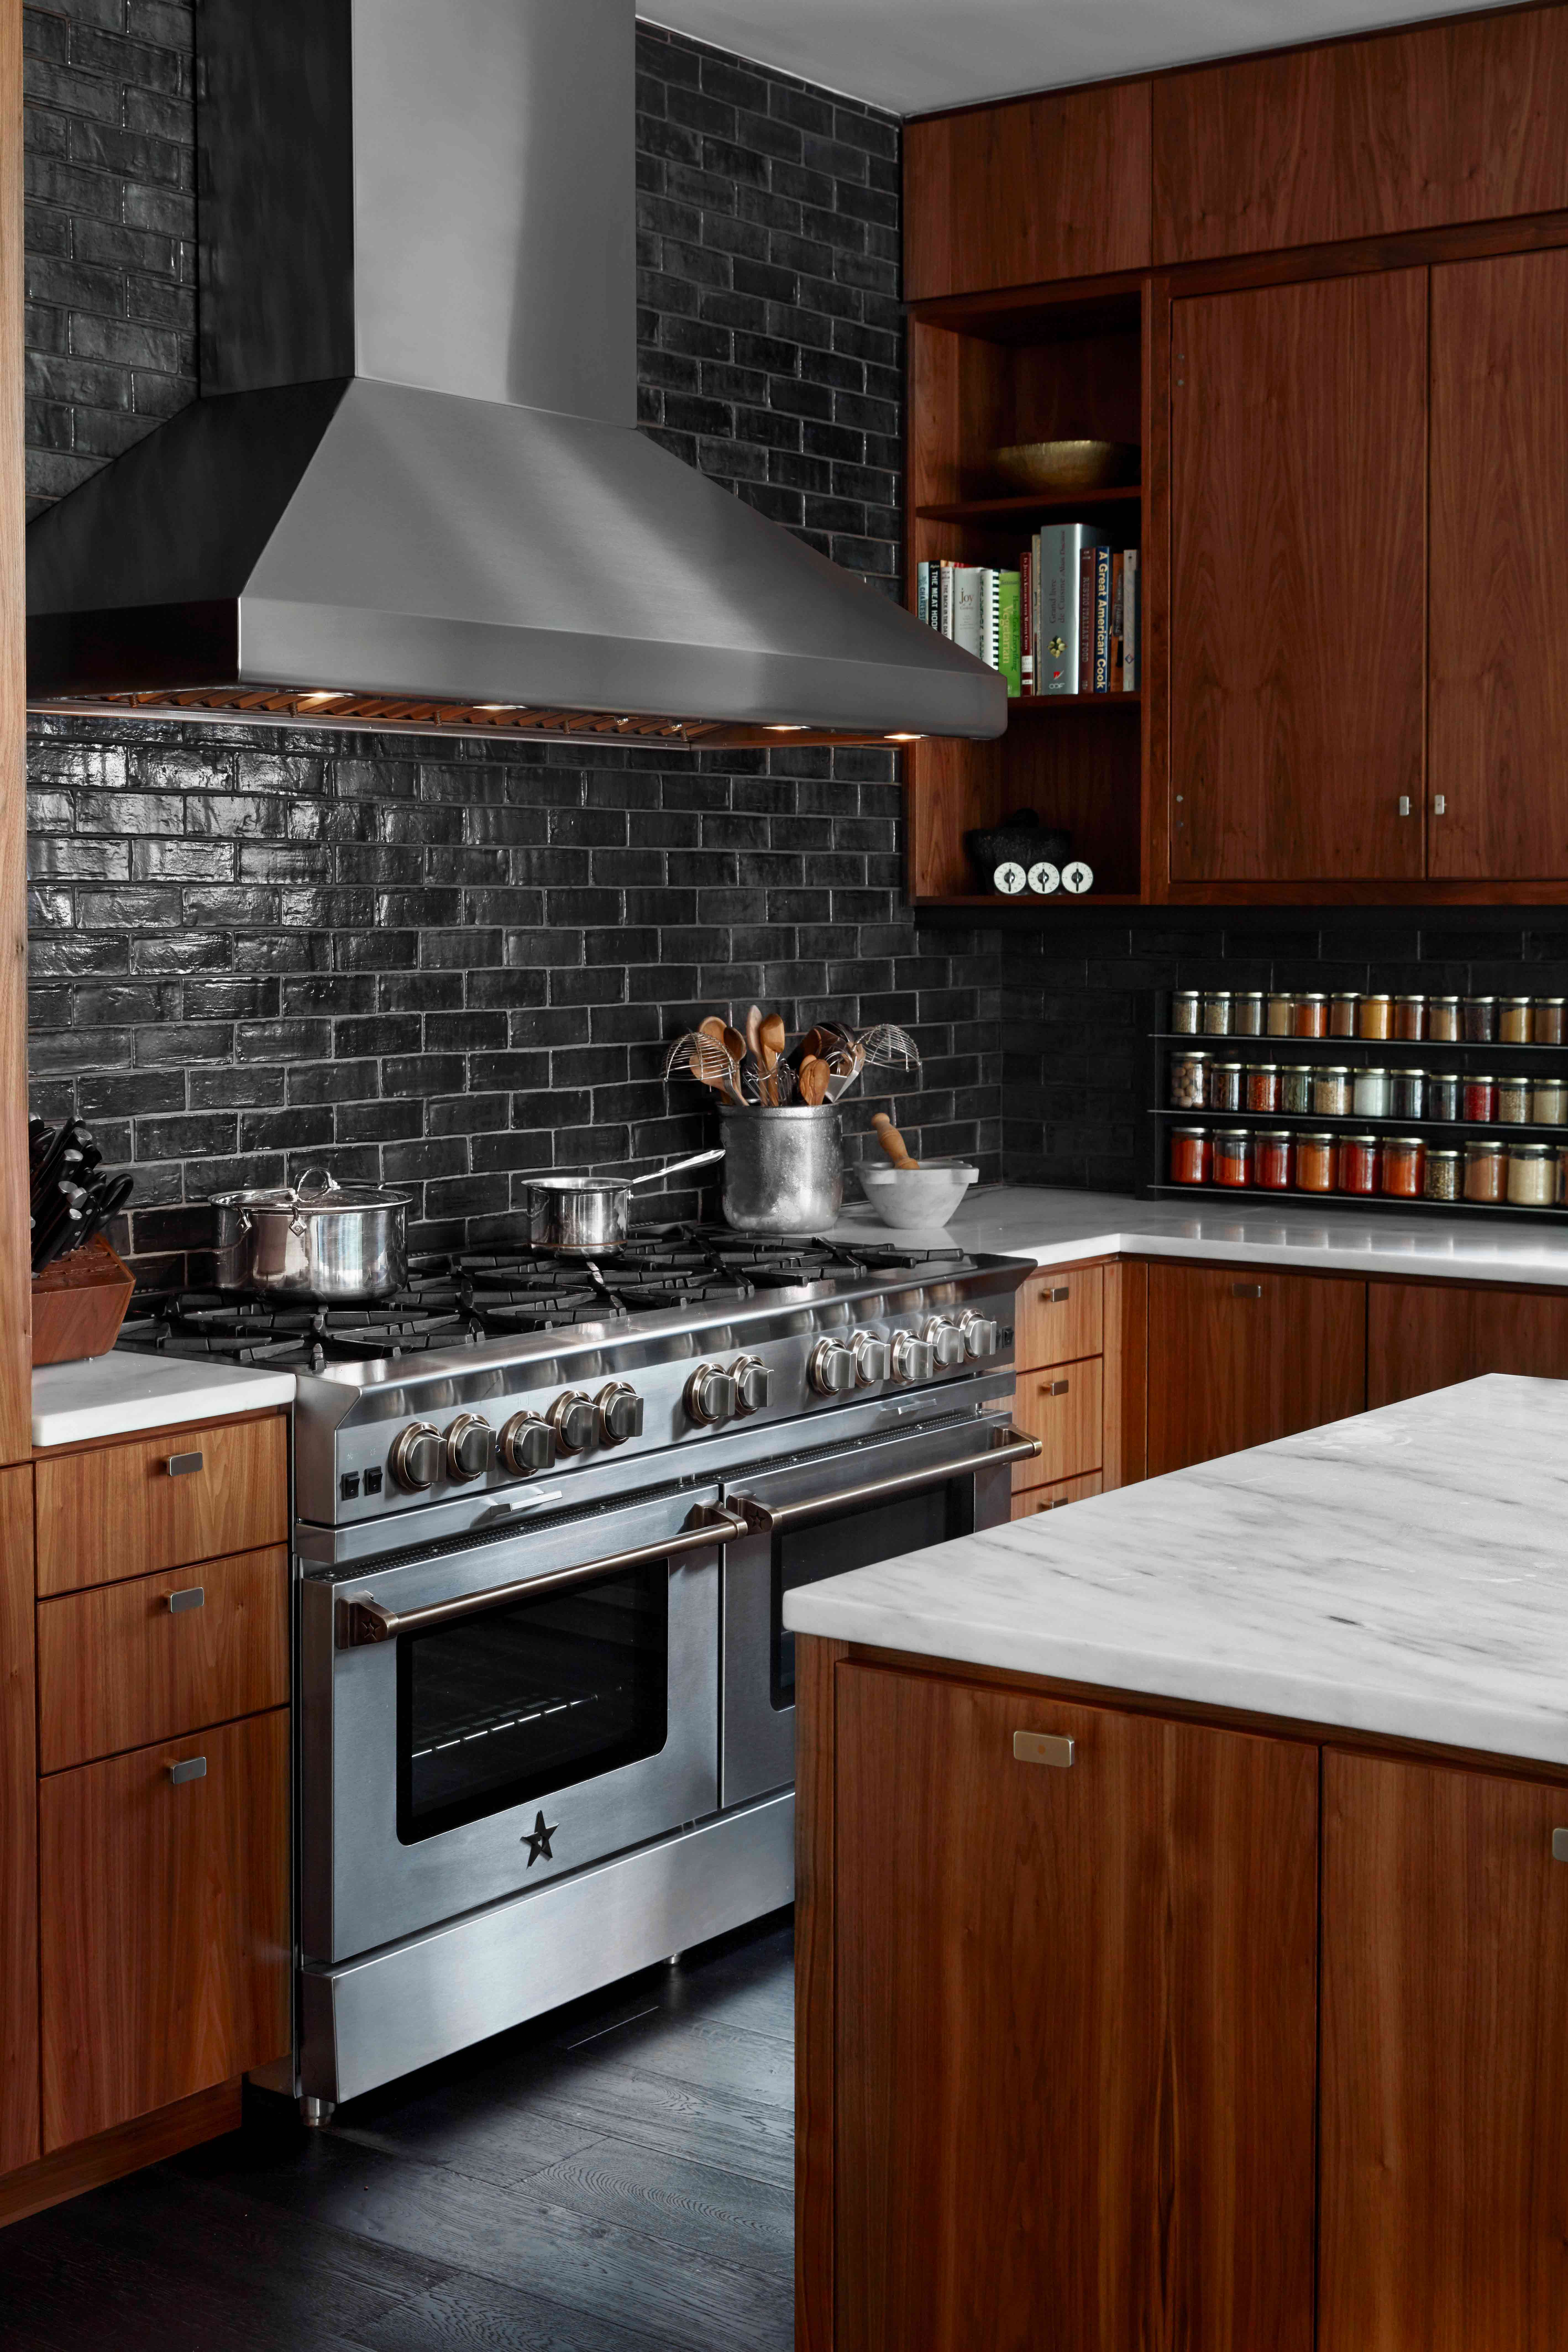 Bluestar Luxury Kitchens